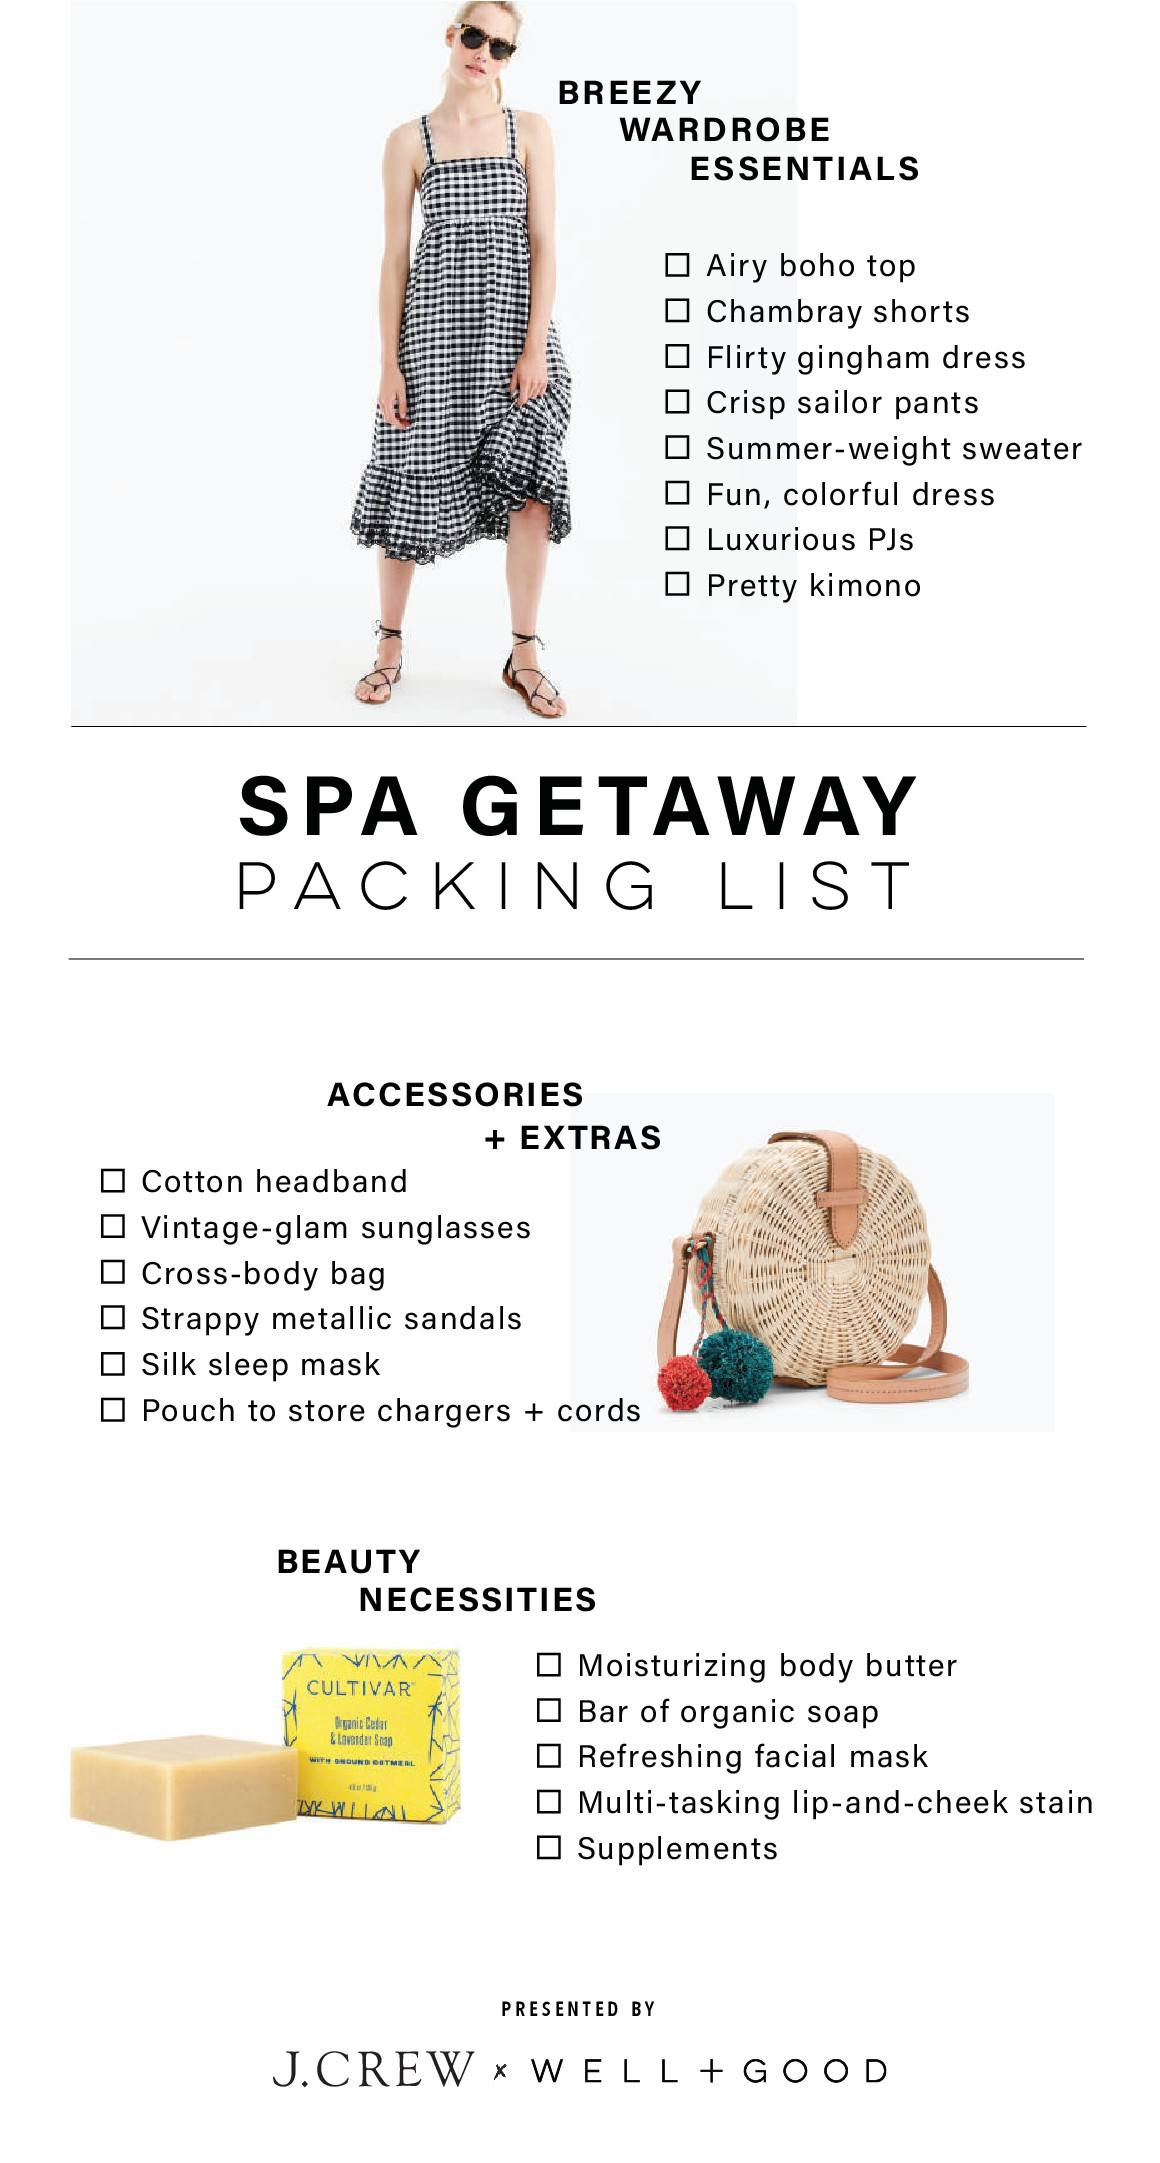 J.Crew spa packing list